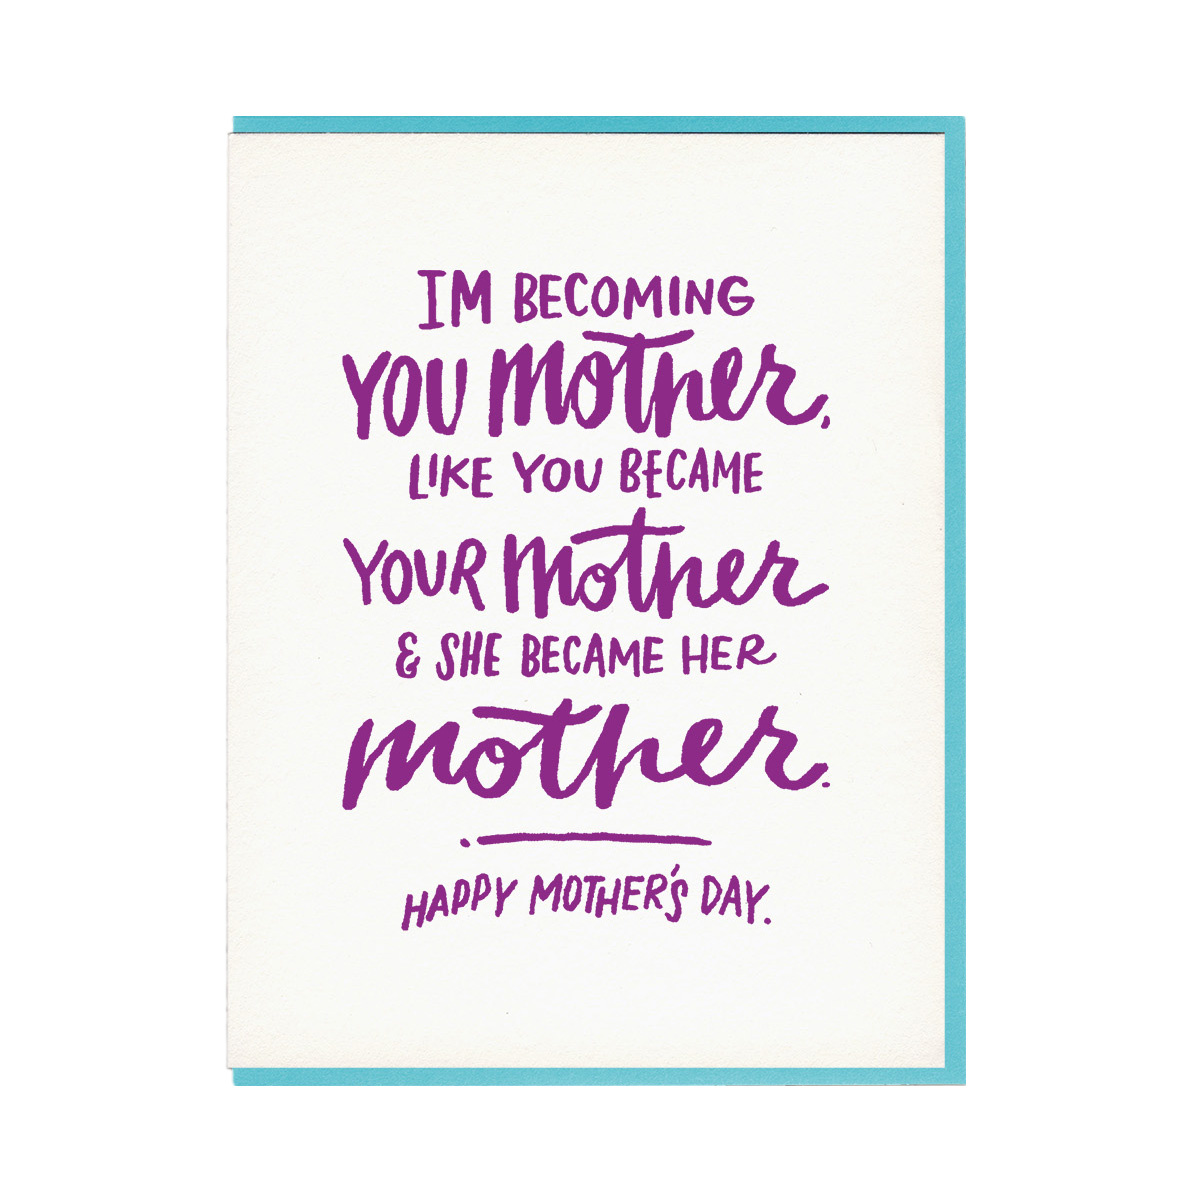 Happy Mother's Day - Im Becoming...-1